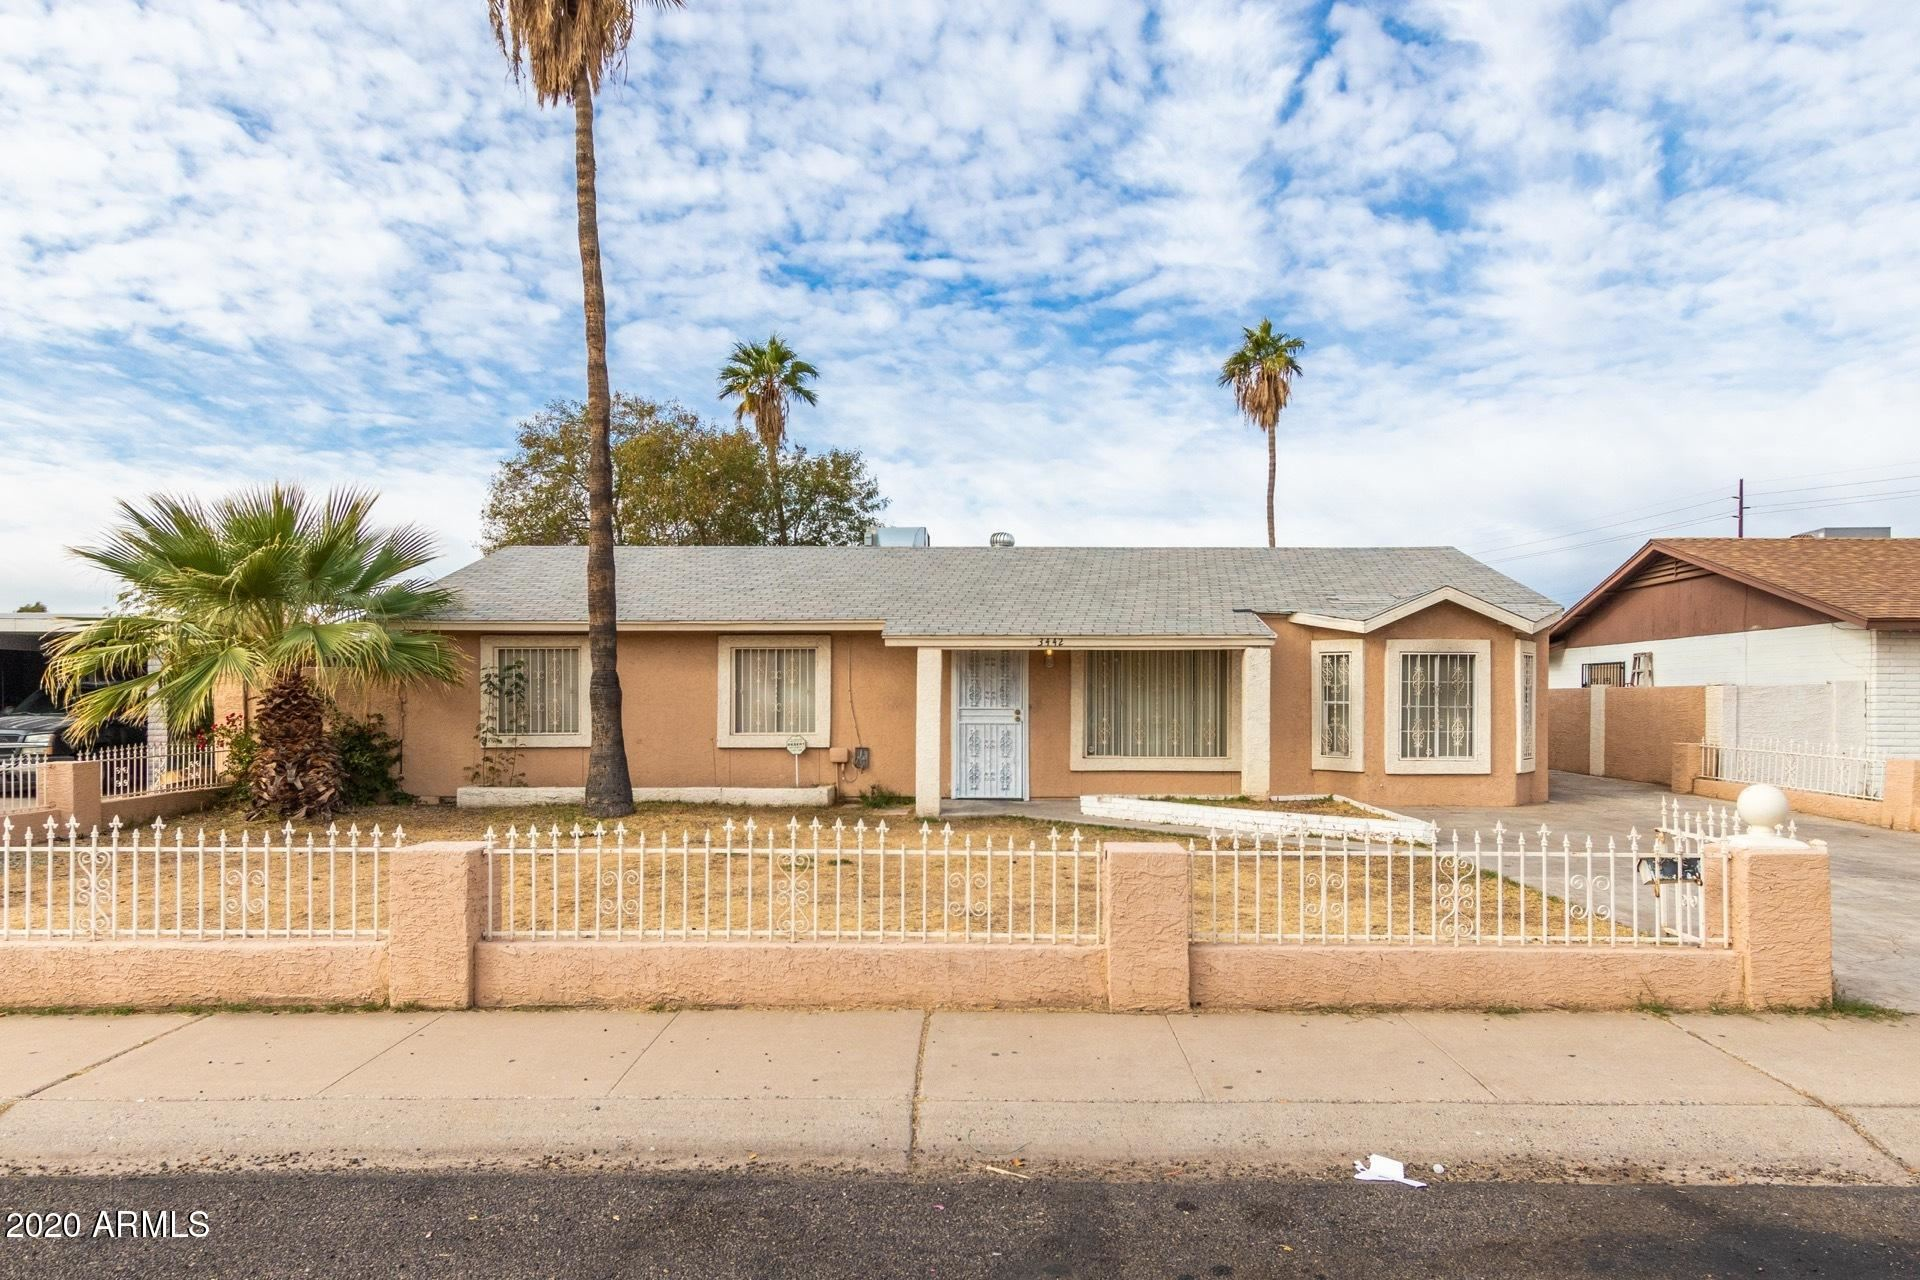 3442 N 39TH Drive, Phoenix, AZ 85019 - MLS#: 6176296